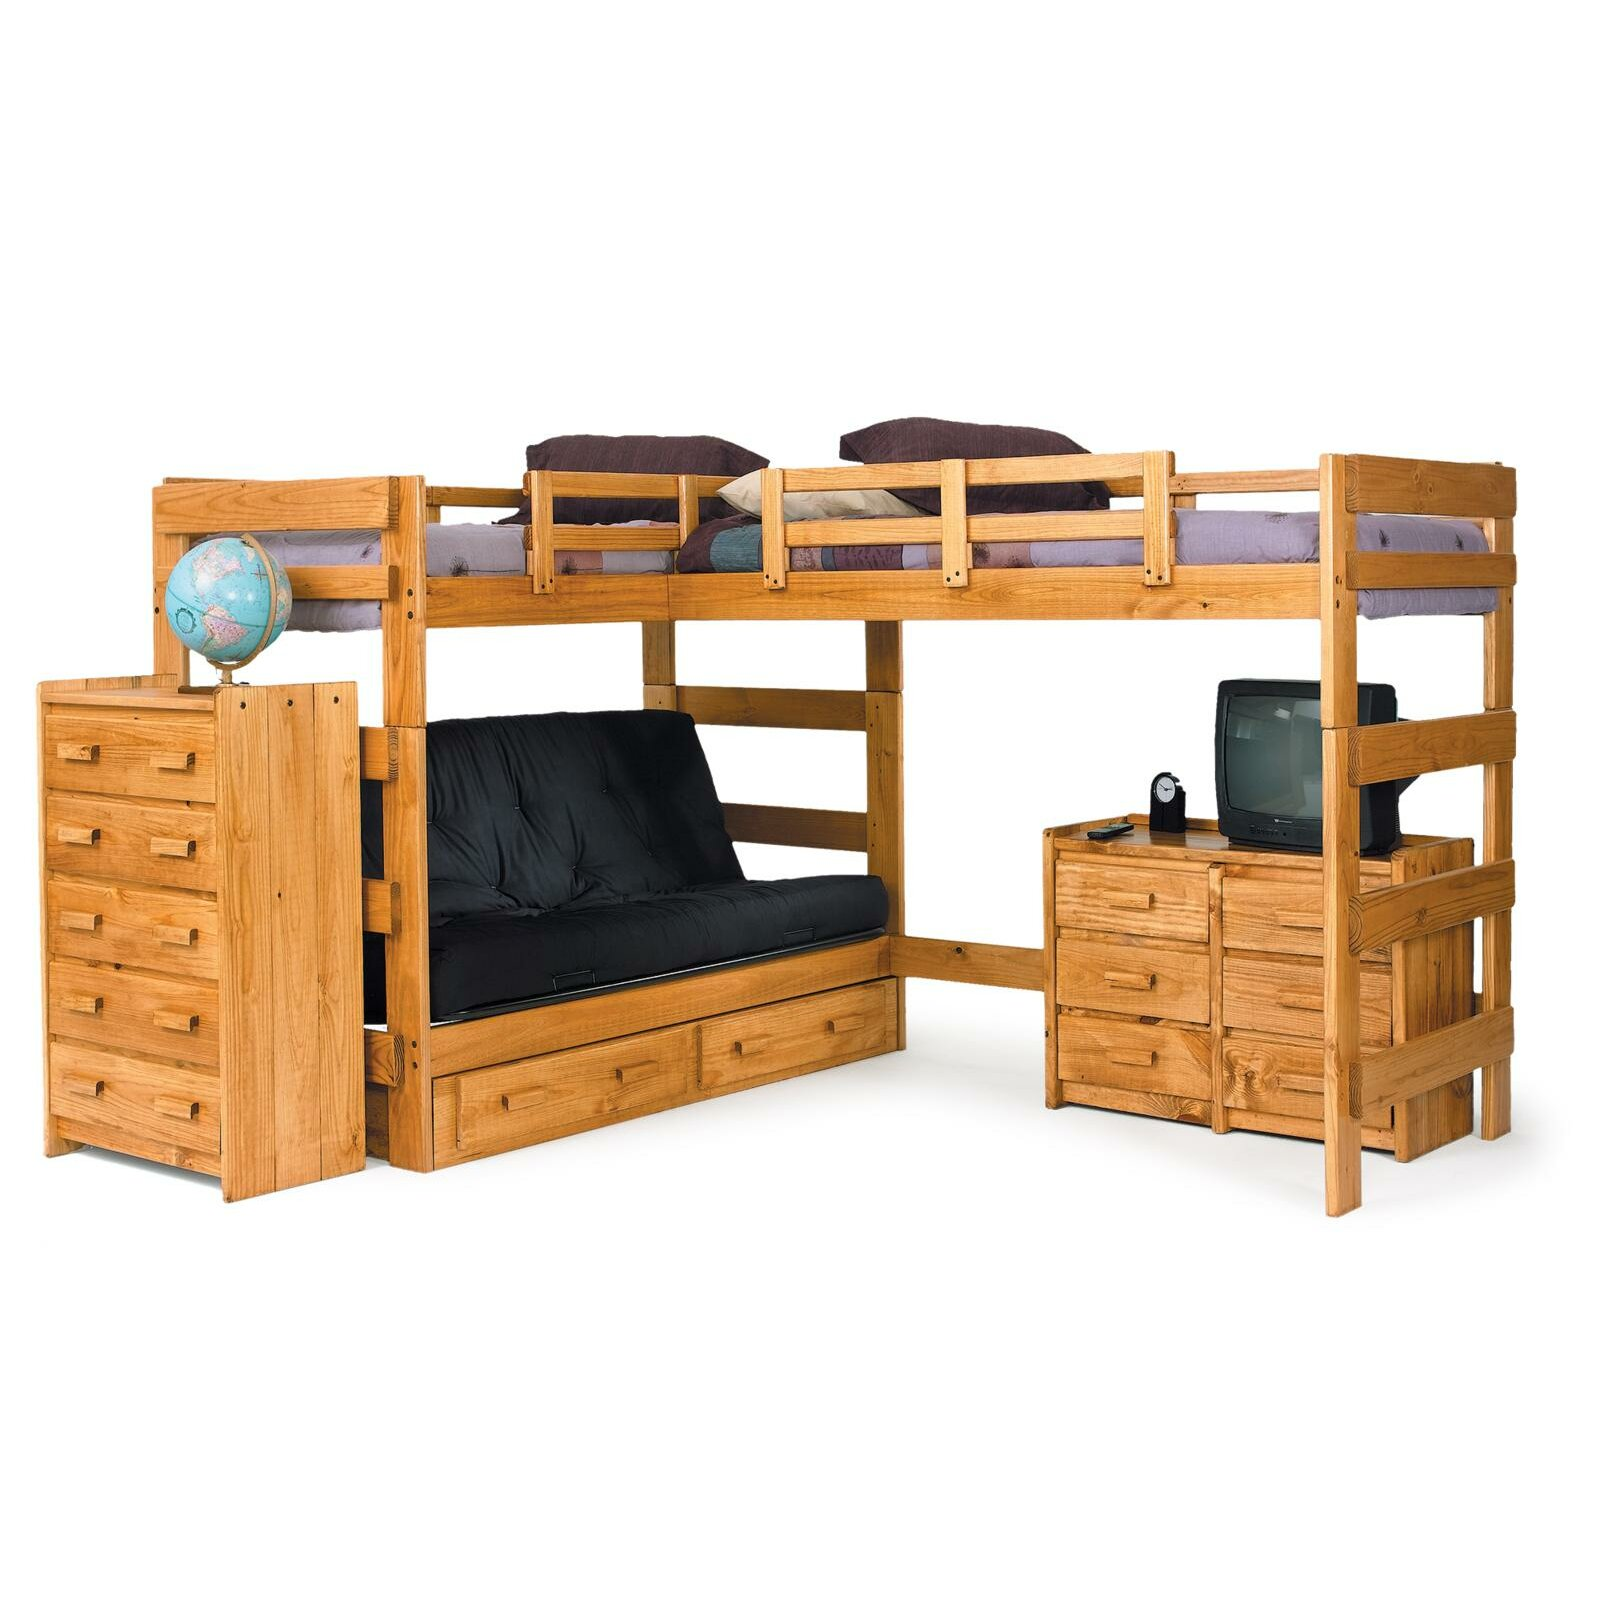 Bunk beds with slide and stairs - L Shaped Bunk Bed